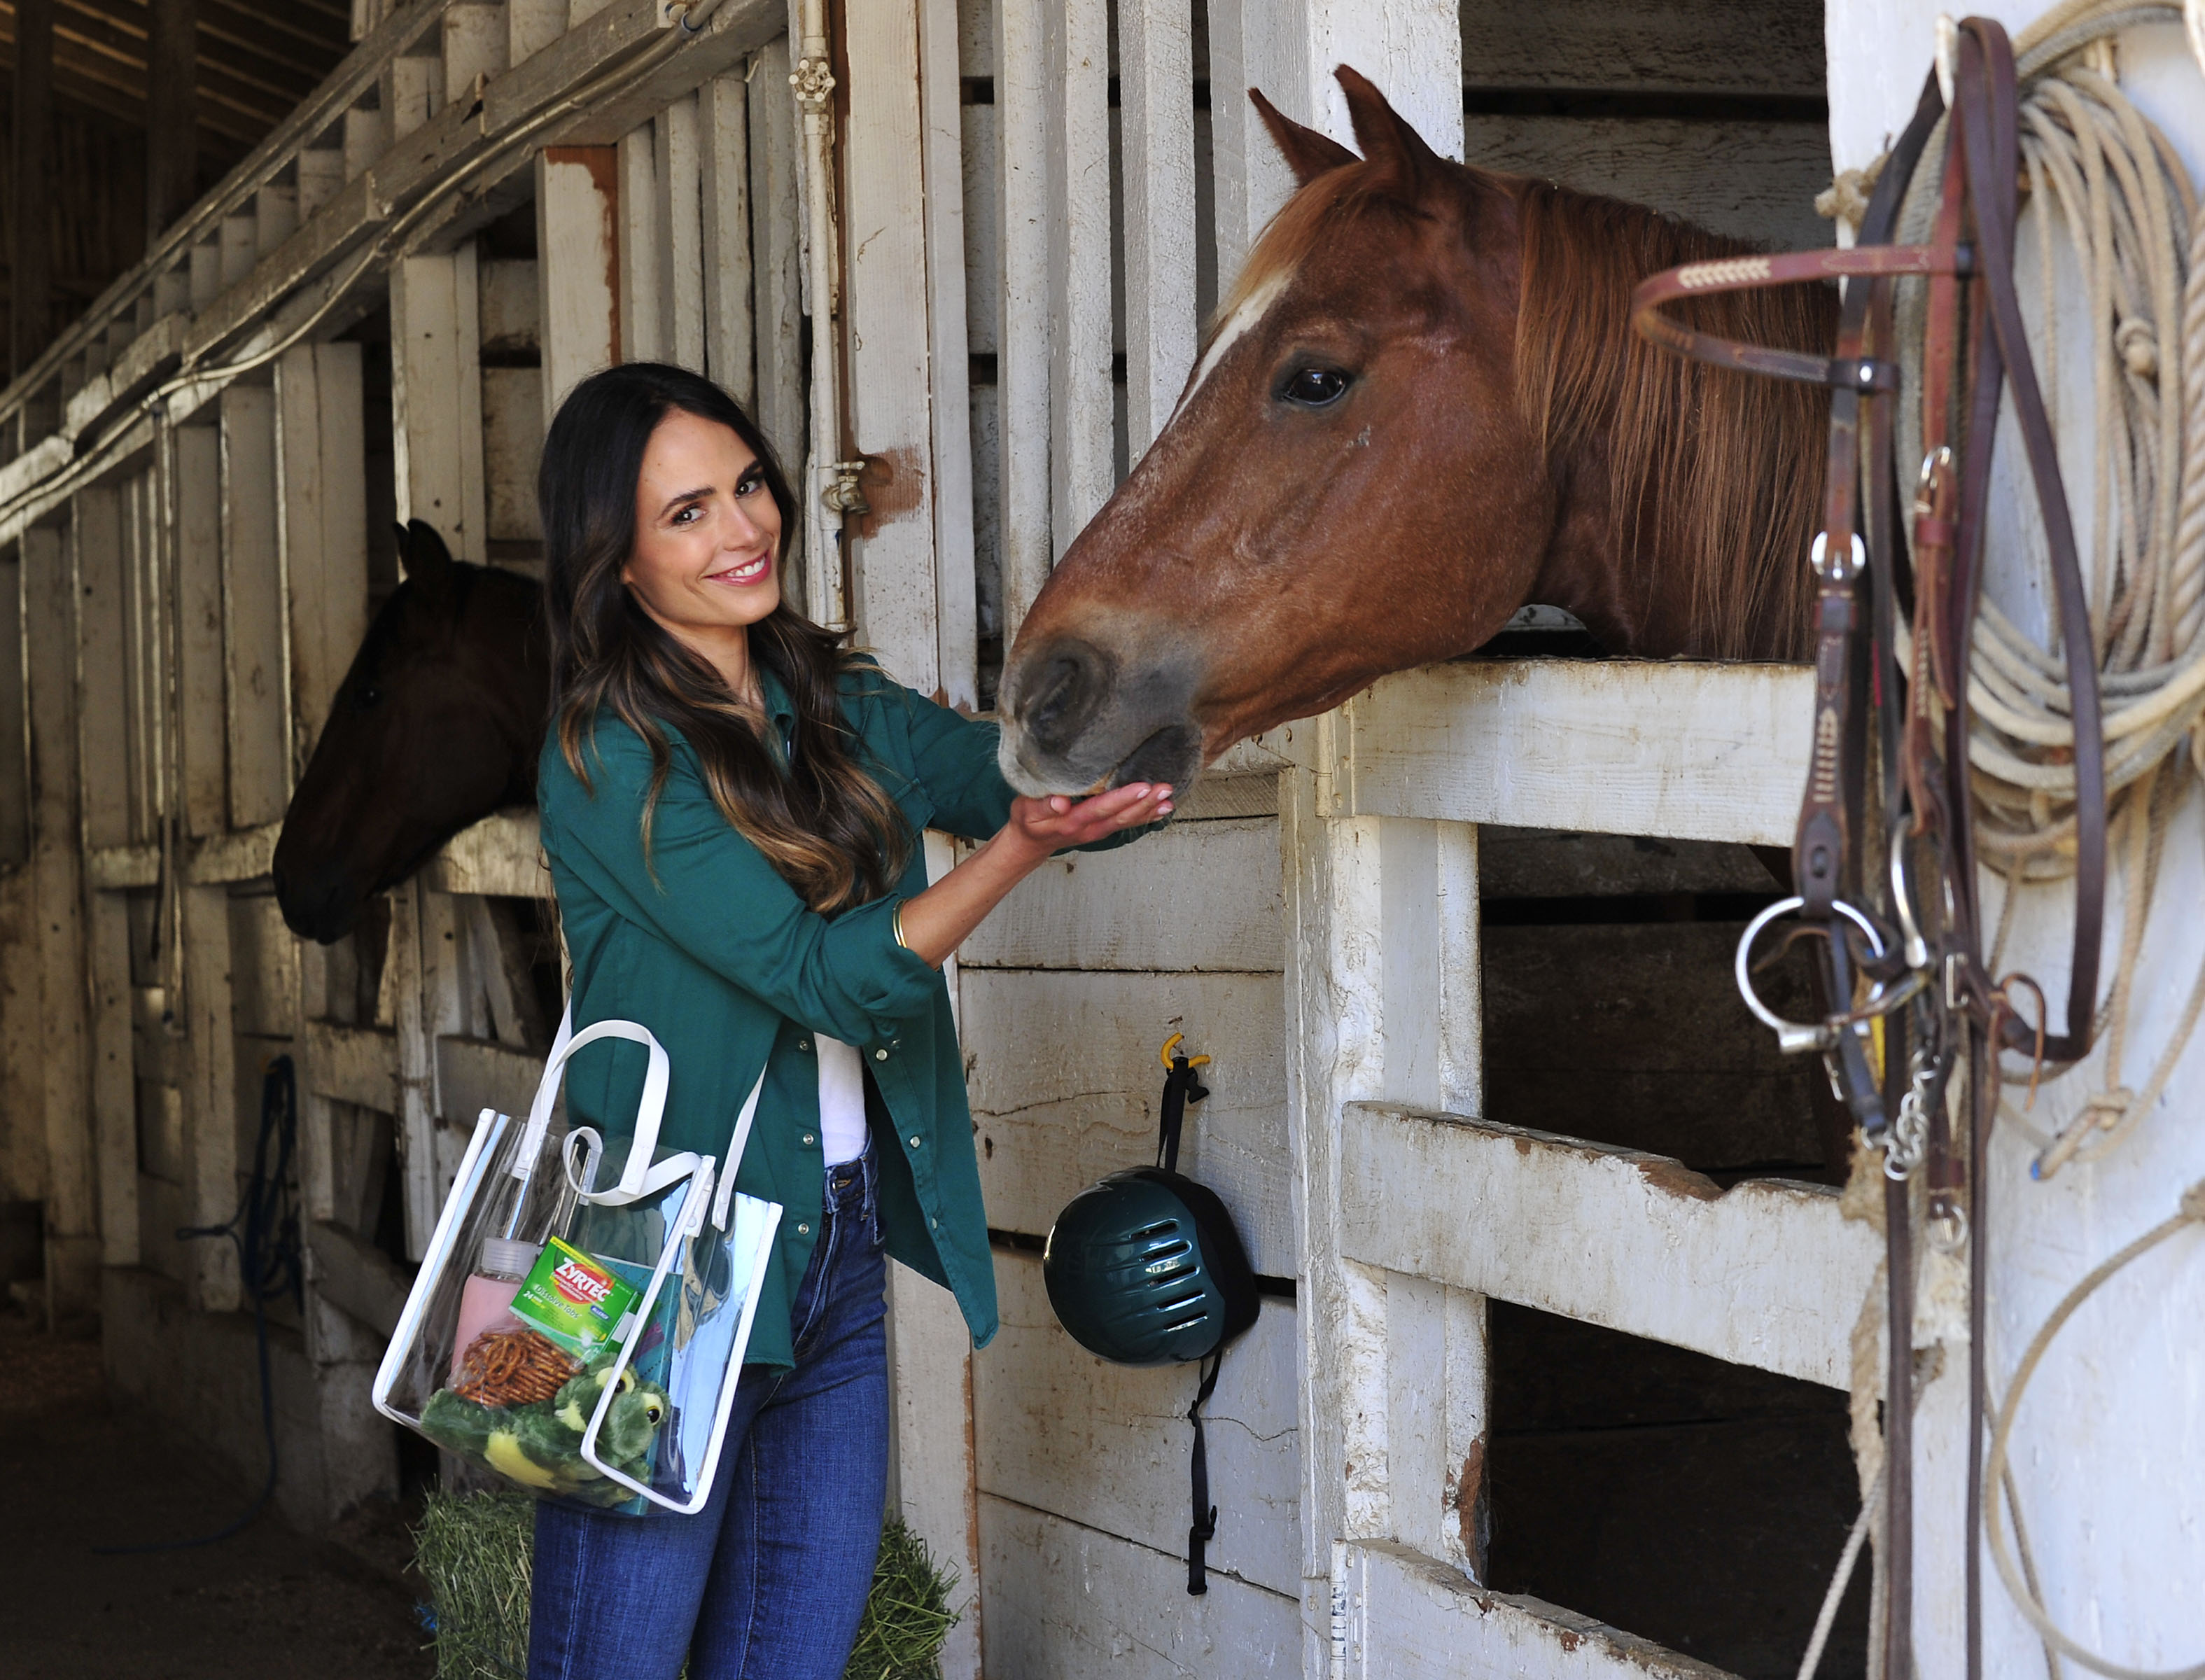 - Los Angeles, CA - 06/05/2018 - Allergies didn`t stop Jordana Brewster from enjoying a day at the horse stable with her family thanks to consistent relief from Zyrtec.-PICTURED: Jordana Brewster-PHOTO by: Michael Simon/startraksphoto.com-MS459368Editorial - Rights Managed Image - Please contact www.startraksphoto.com for licensing fee Startraks PhotoStartraks PhotoNew York, NY For licensing please call 212-414-9464 or email sales@startraksphoto.comImage may not be published in any way that is or might be deemed defamatory, libelous, pornographic, or obscene. Please consult our sales department for any clarification or question you may haveStartraks Photo reserves the right to pursue unauthorized users of this image. If you violate our intellectual property you may be liable for actual damages, loss of income, and profits you derive from the use of this image, and where appropriate, the cost of collection and/or statutory damages.